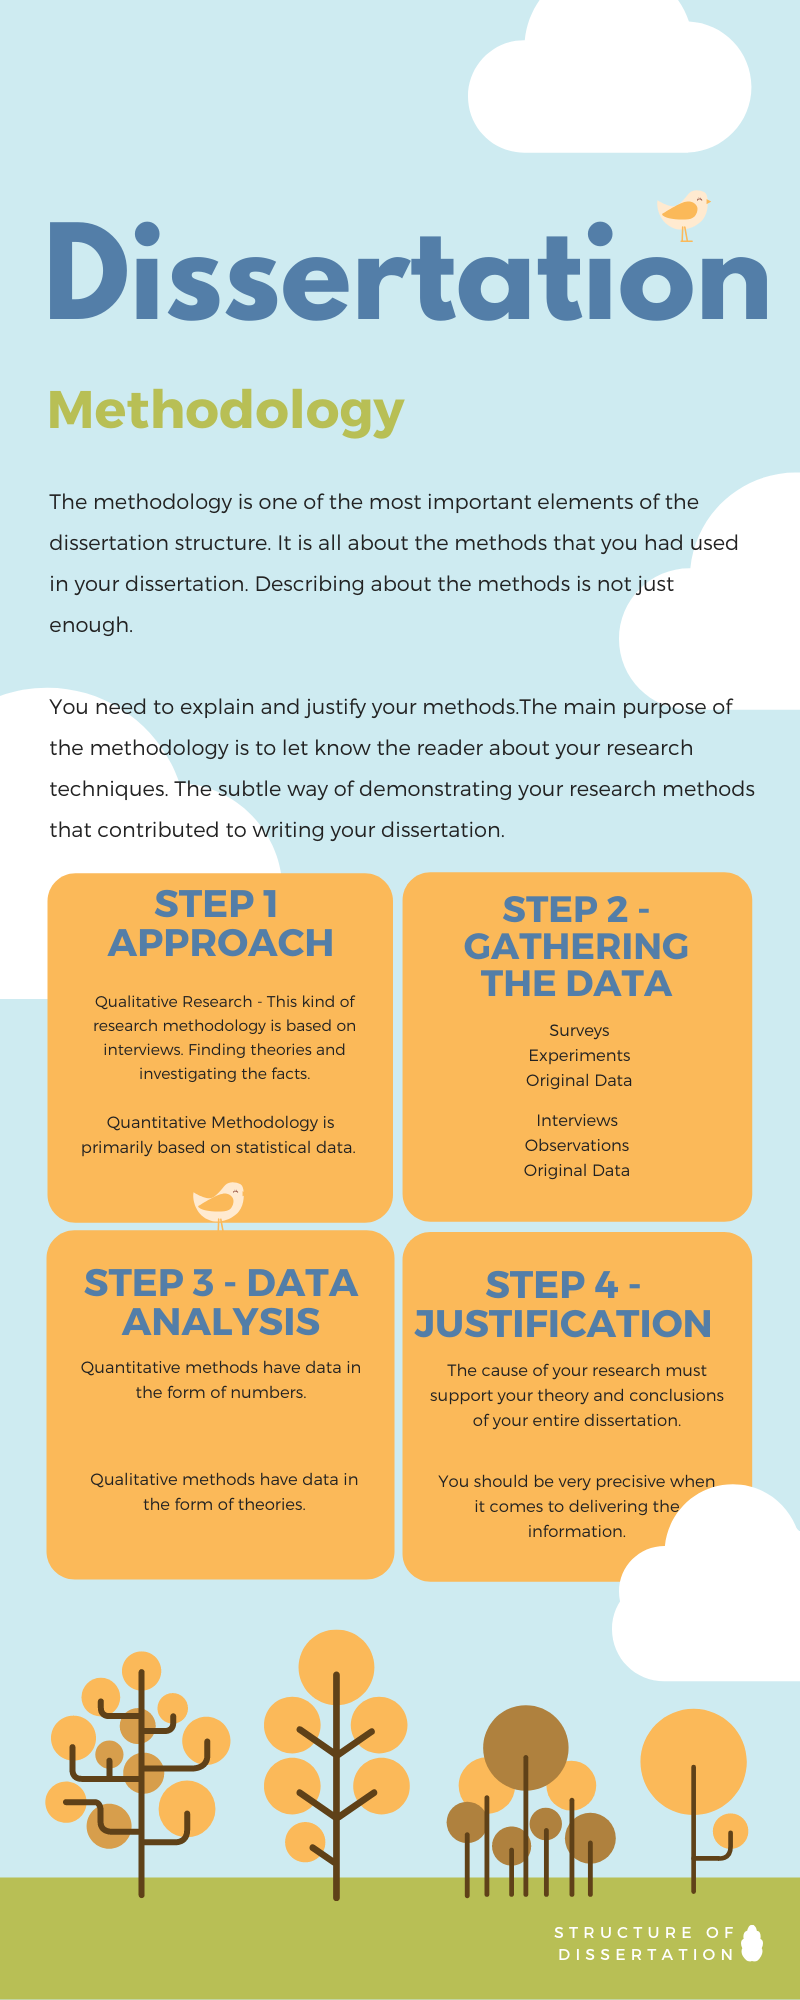 How to Write a Methodology for a Dissertation.